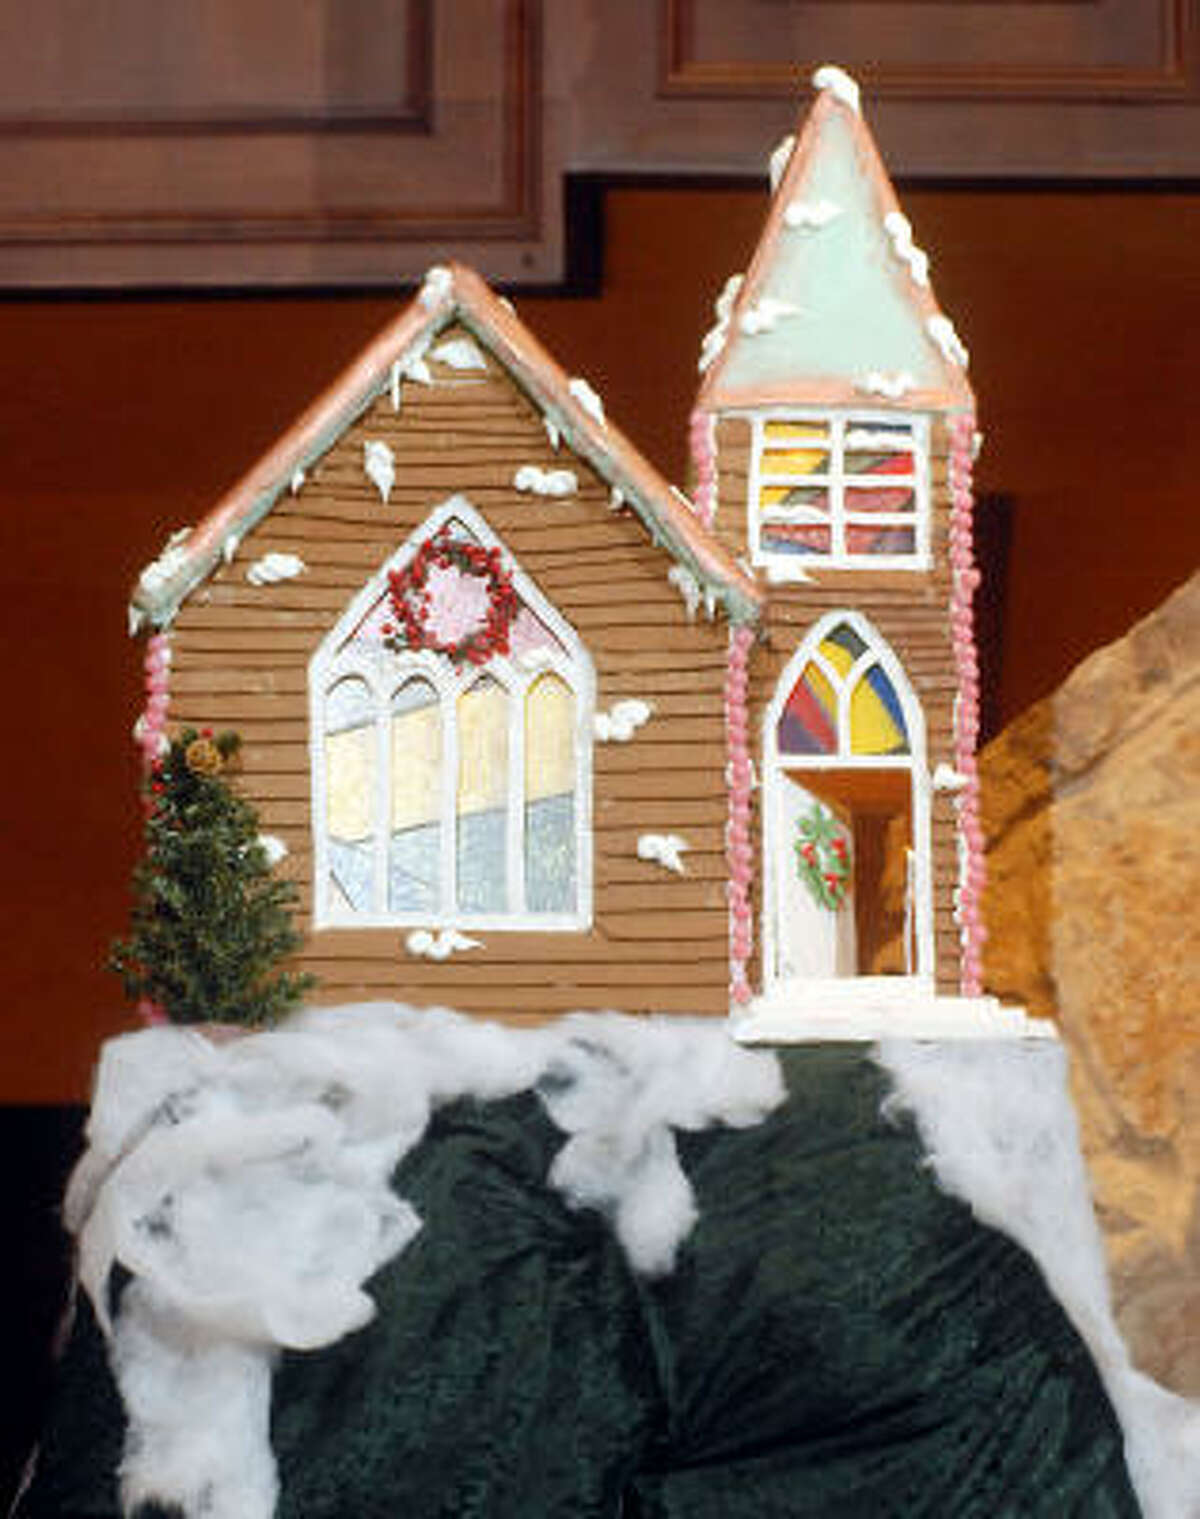 COLORFUL: More than 100 pounds of gingerbread was needed to build the village.